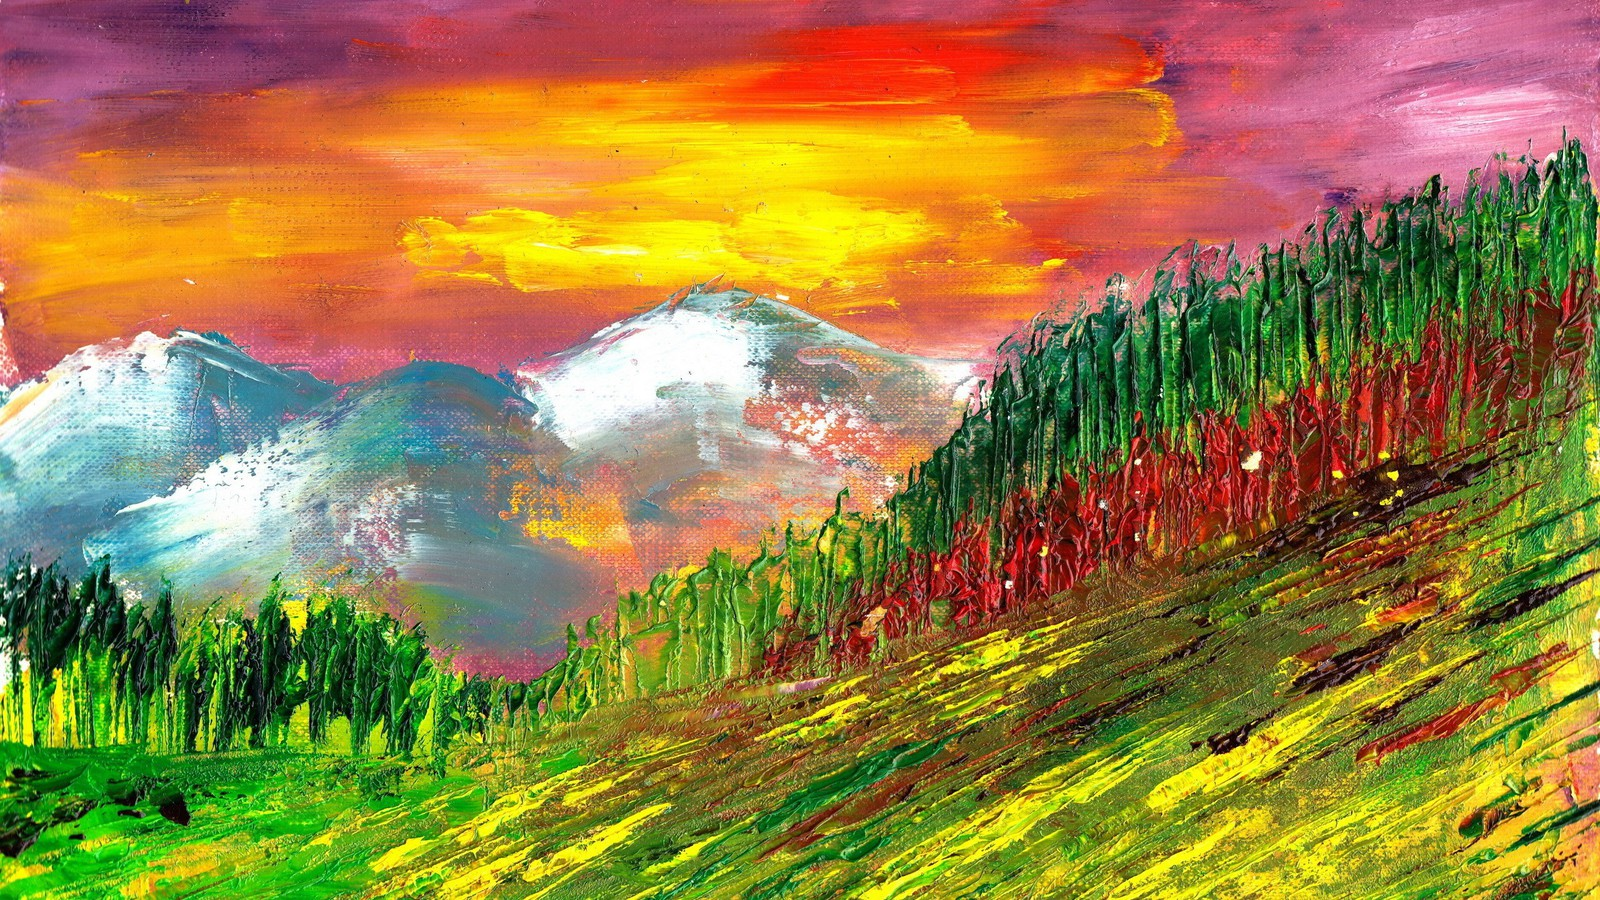 beautiful painting wallpaper,painting,nature,acrylic paint,sky,natural landscape